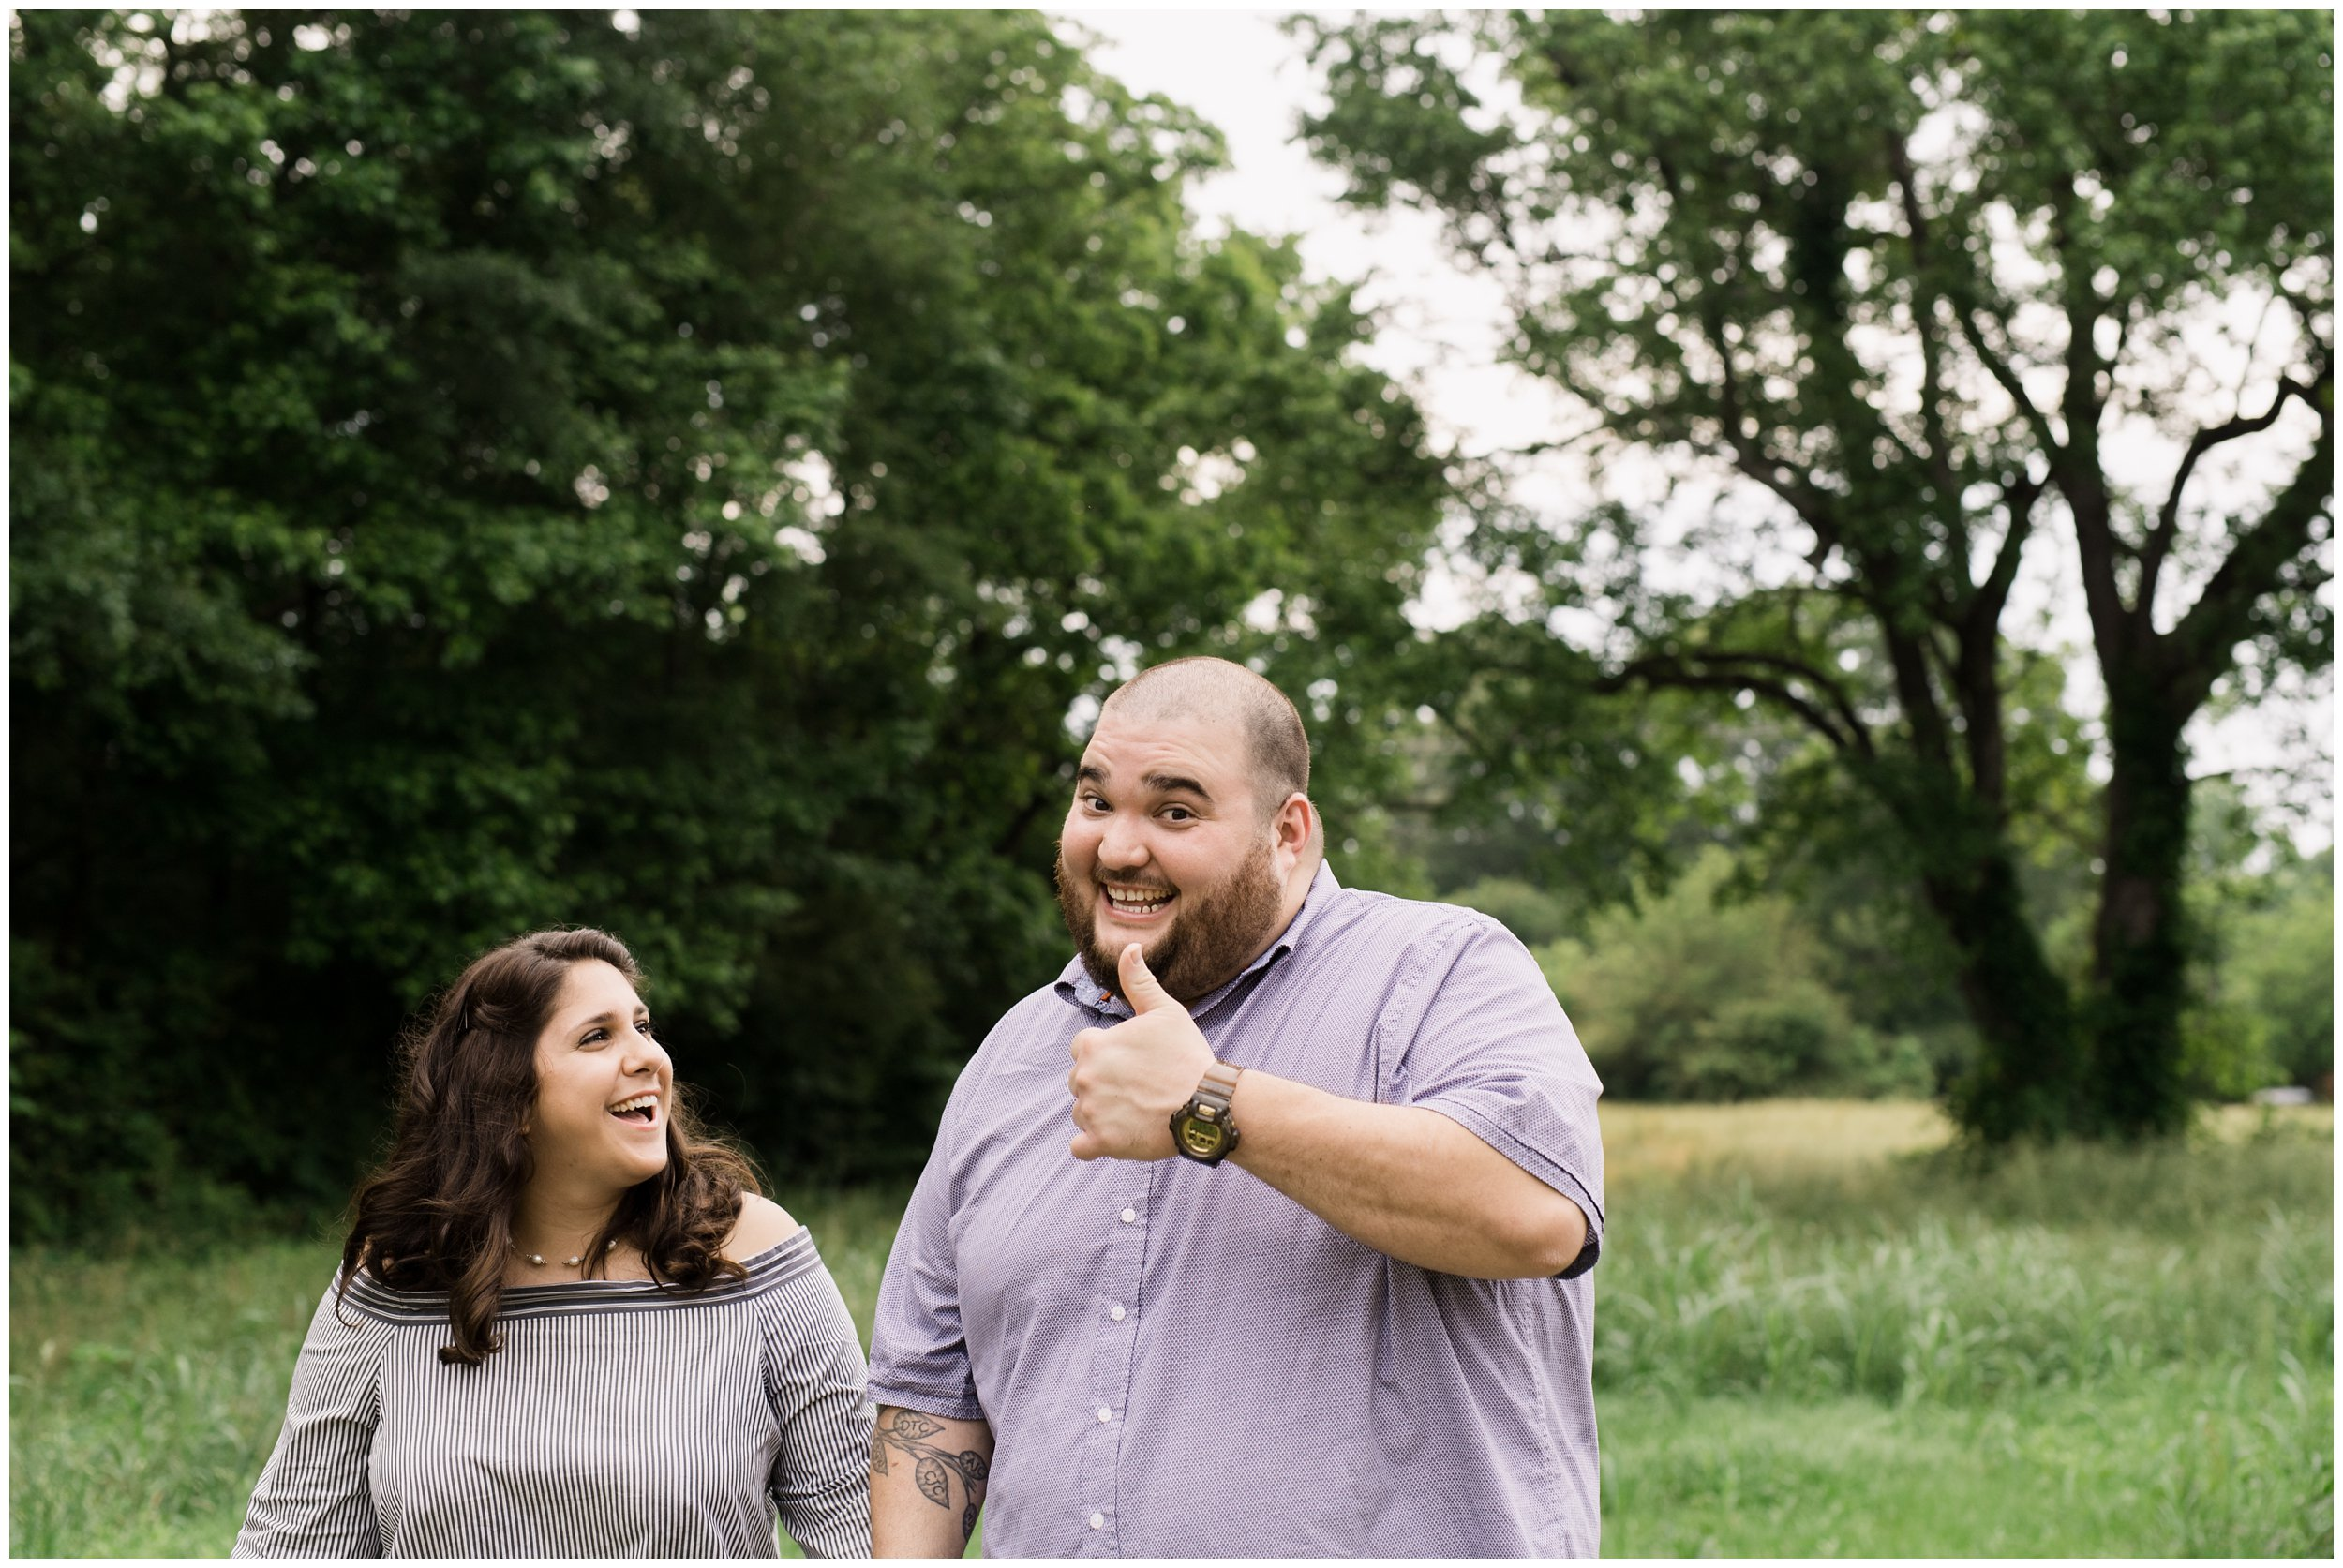 thumbs up from fiance treehouse vineyard engagement photos